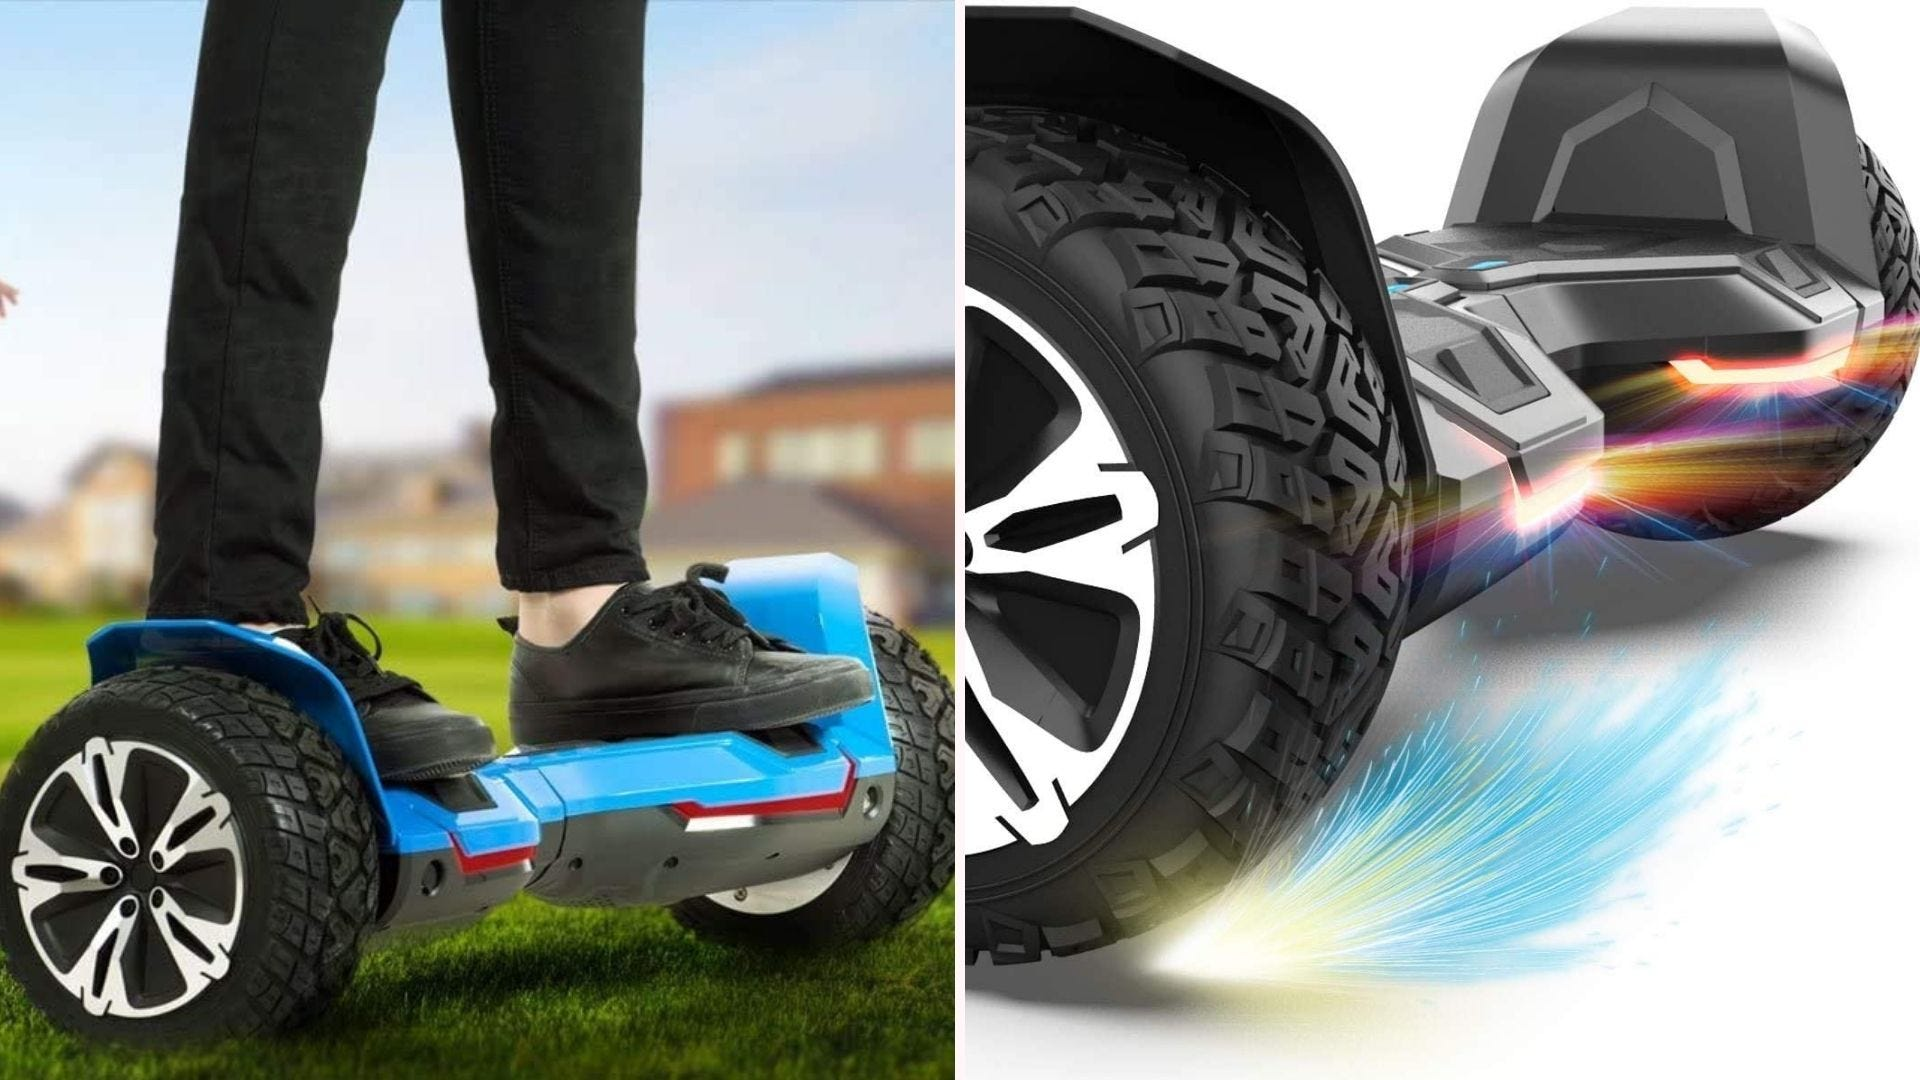 On the left, a rider stands on top of a black and blue hoverboard. On the right, a close up of the device's rigid frame.